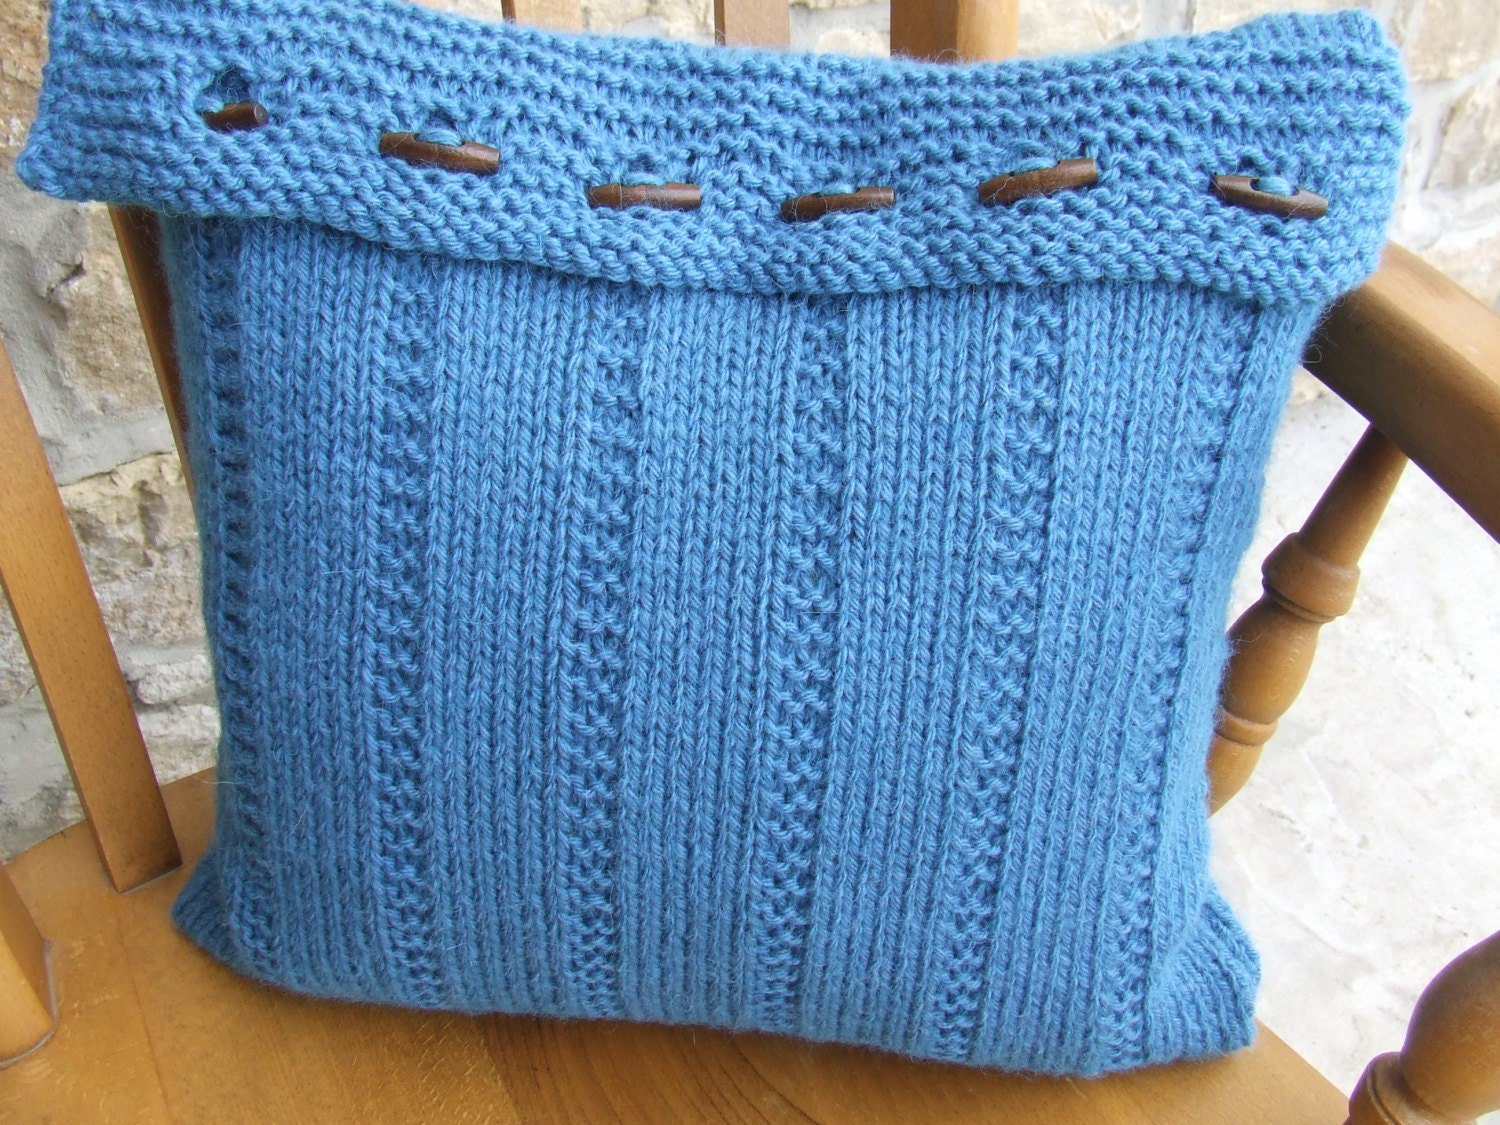 Knitting Pillow Cover : Knitted pillow cover knit cushion by wooliebits